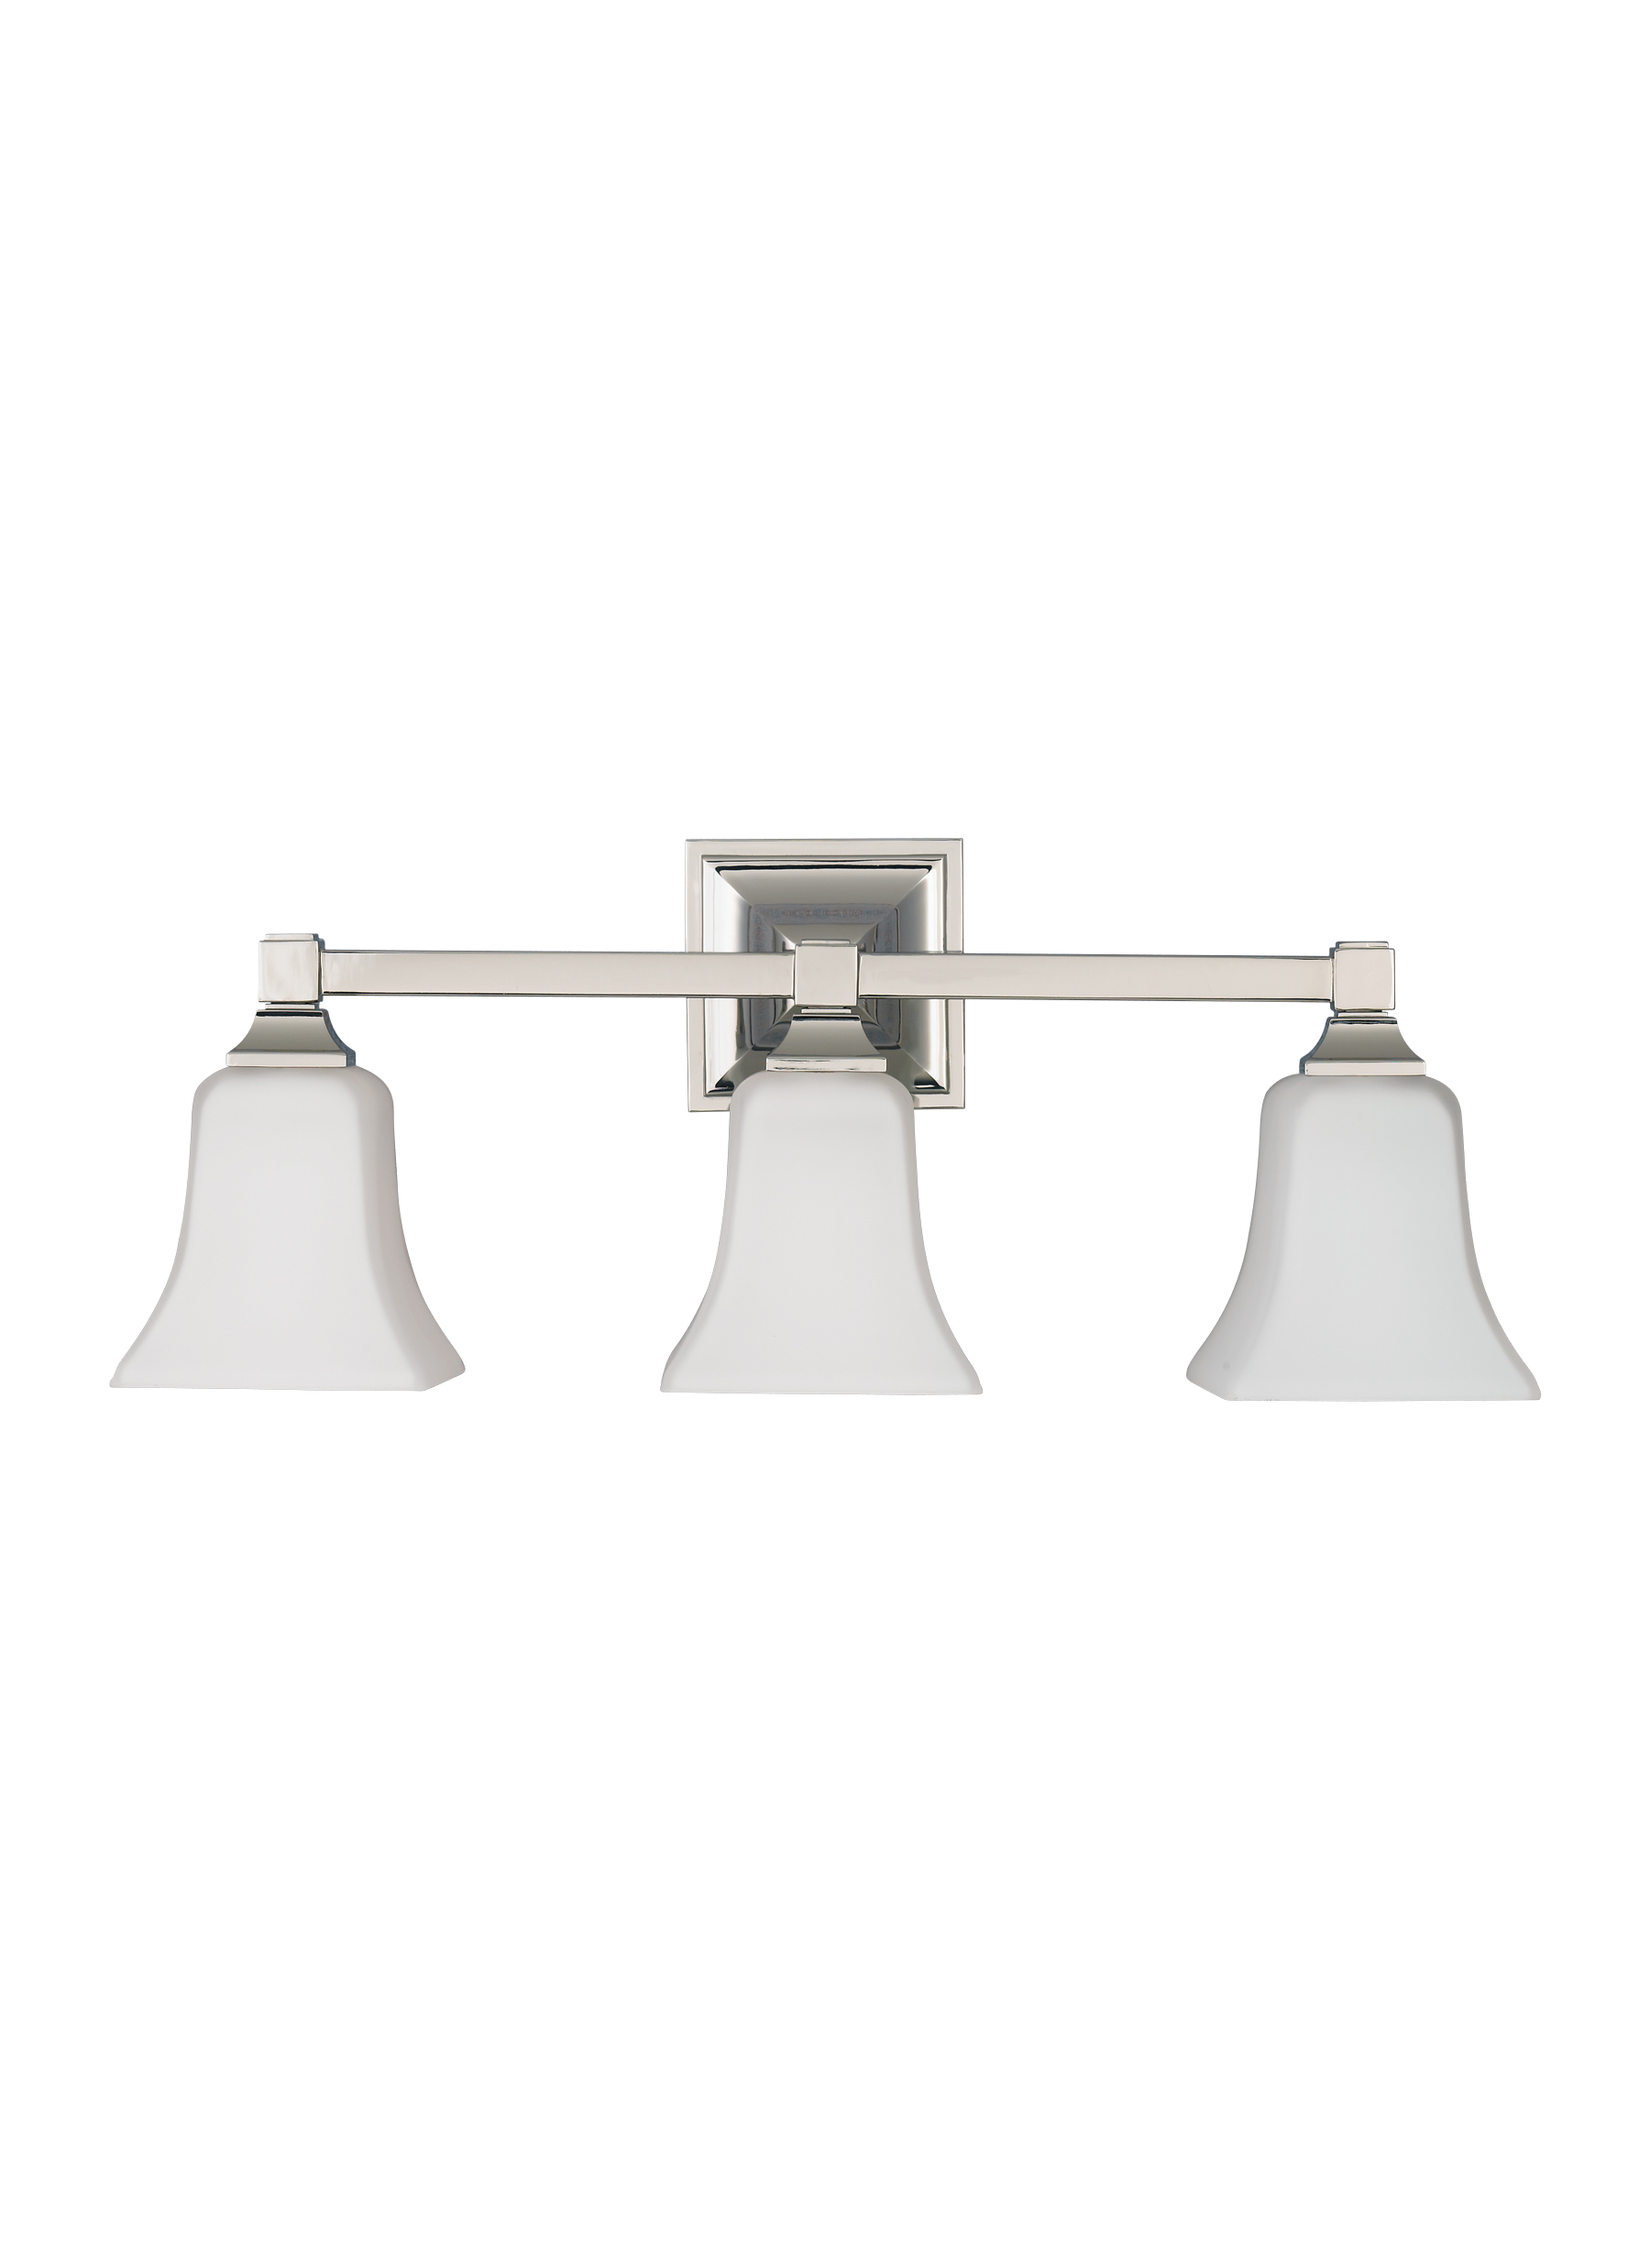 3 Light Vanity Fixture Discontinued Loading Zoom